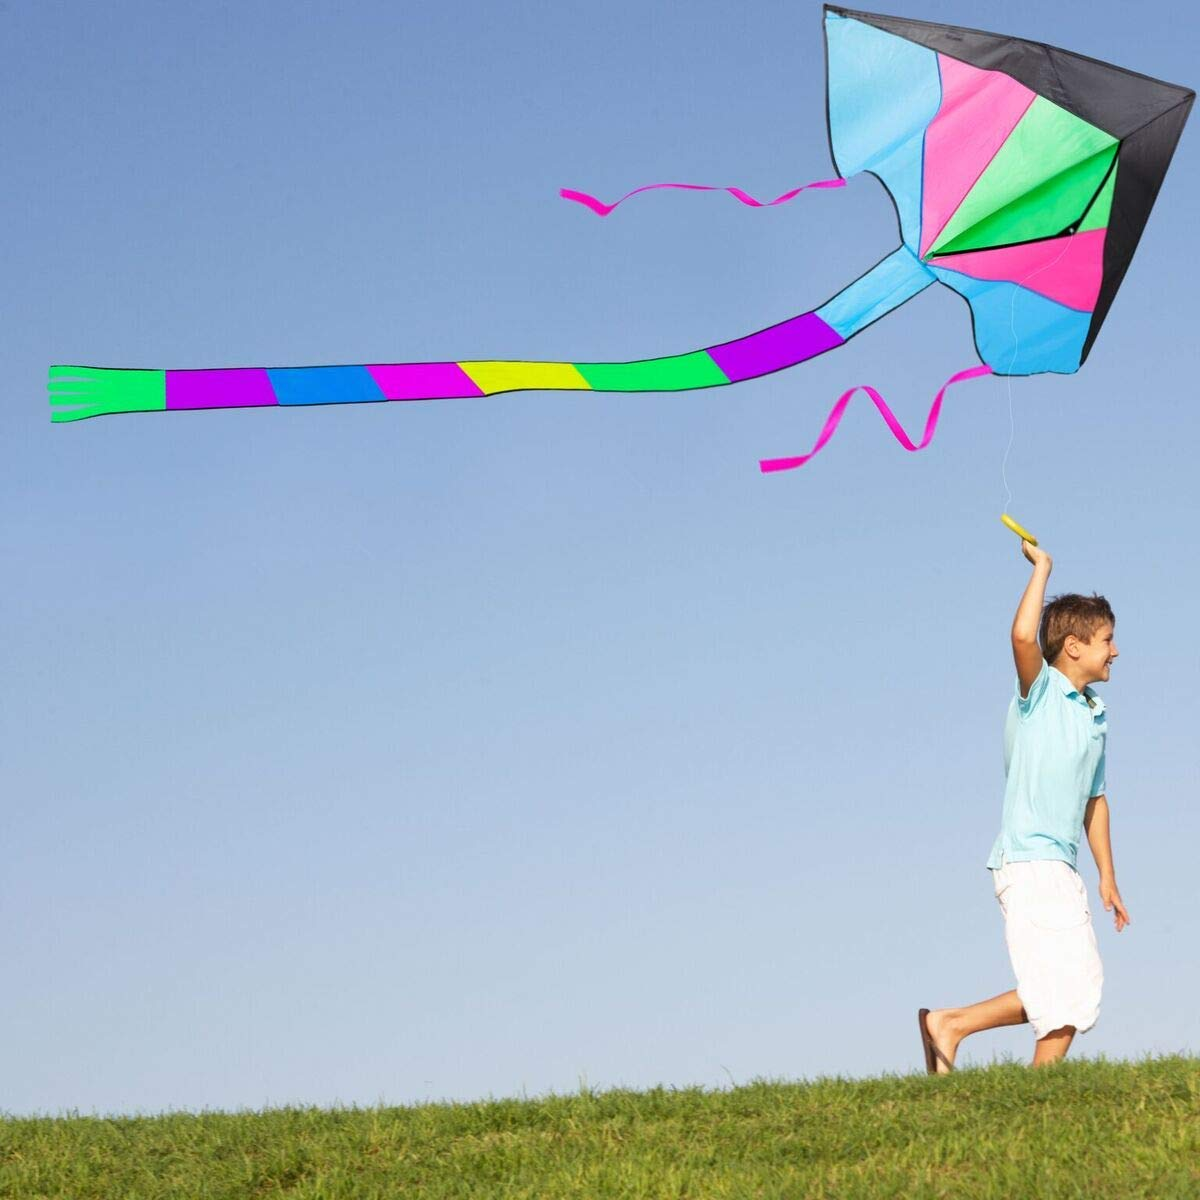 LIDERSTAR Huge Kite for Kids and Adults -Big Rainbow Kite 61 Inches Wide - Long Tail 95 inch,100 Meter String -Easy to Fly Toy for Outdoor Games Beach and Activities -Good Plan for Memorable Fun  Price: £11.97